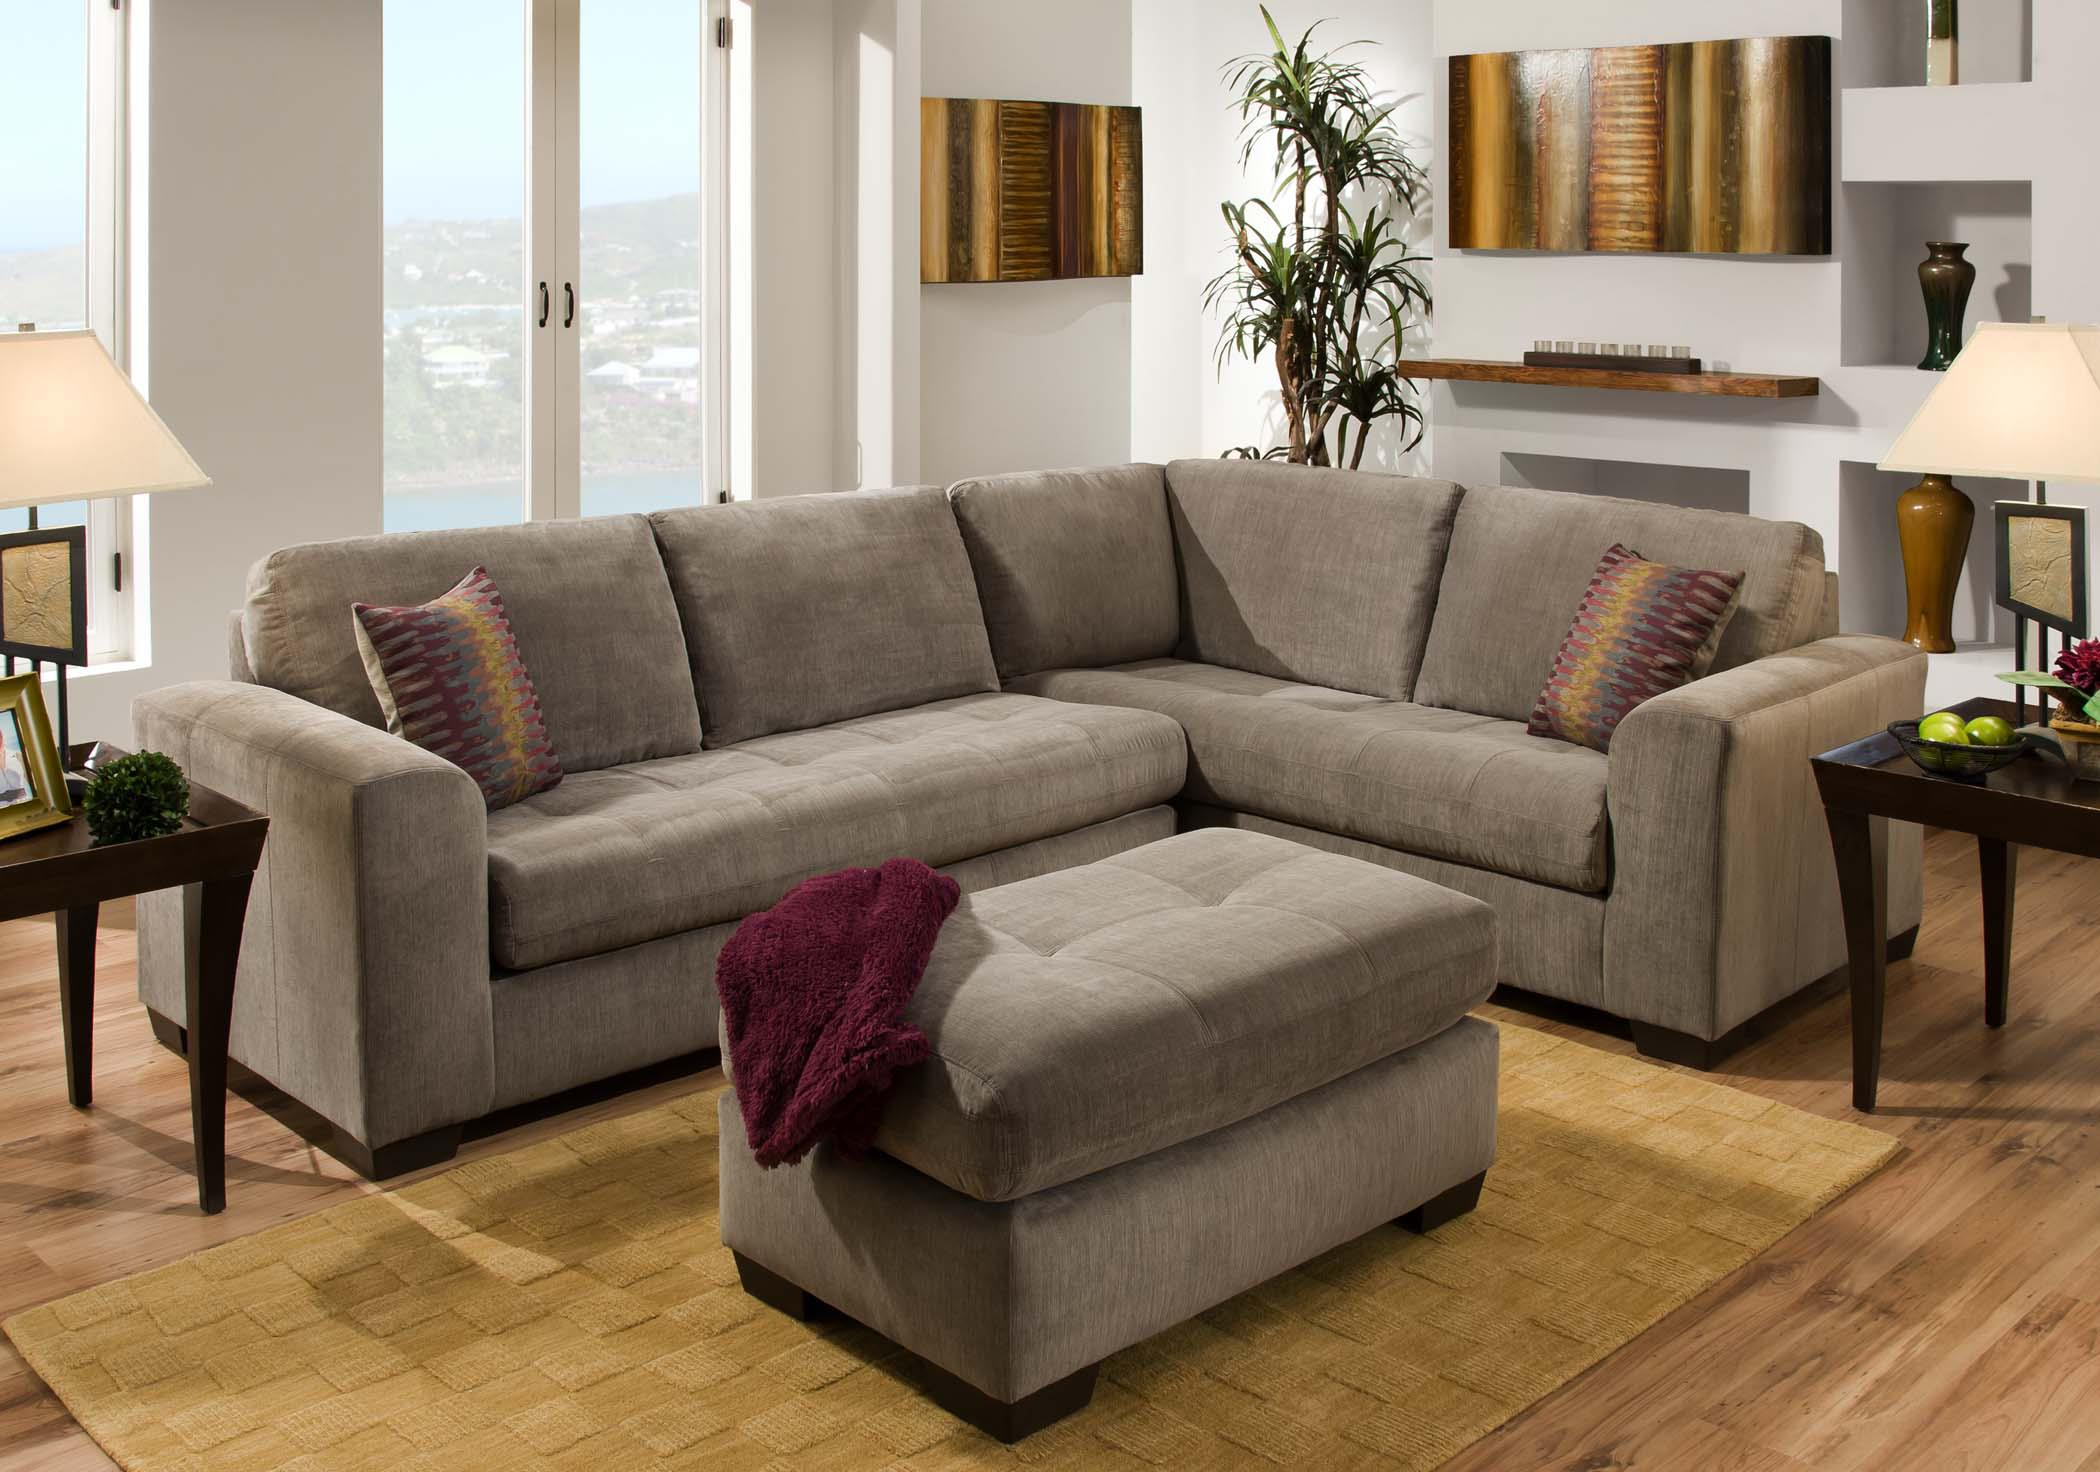 Contemporary Sectional Sofa With Corner Construction   1230 By American  Furniture   Wilcox Furniture   Sectional Sofas Corpus Christi, Kingsville,  Calallen, ...